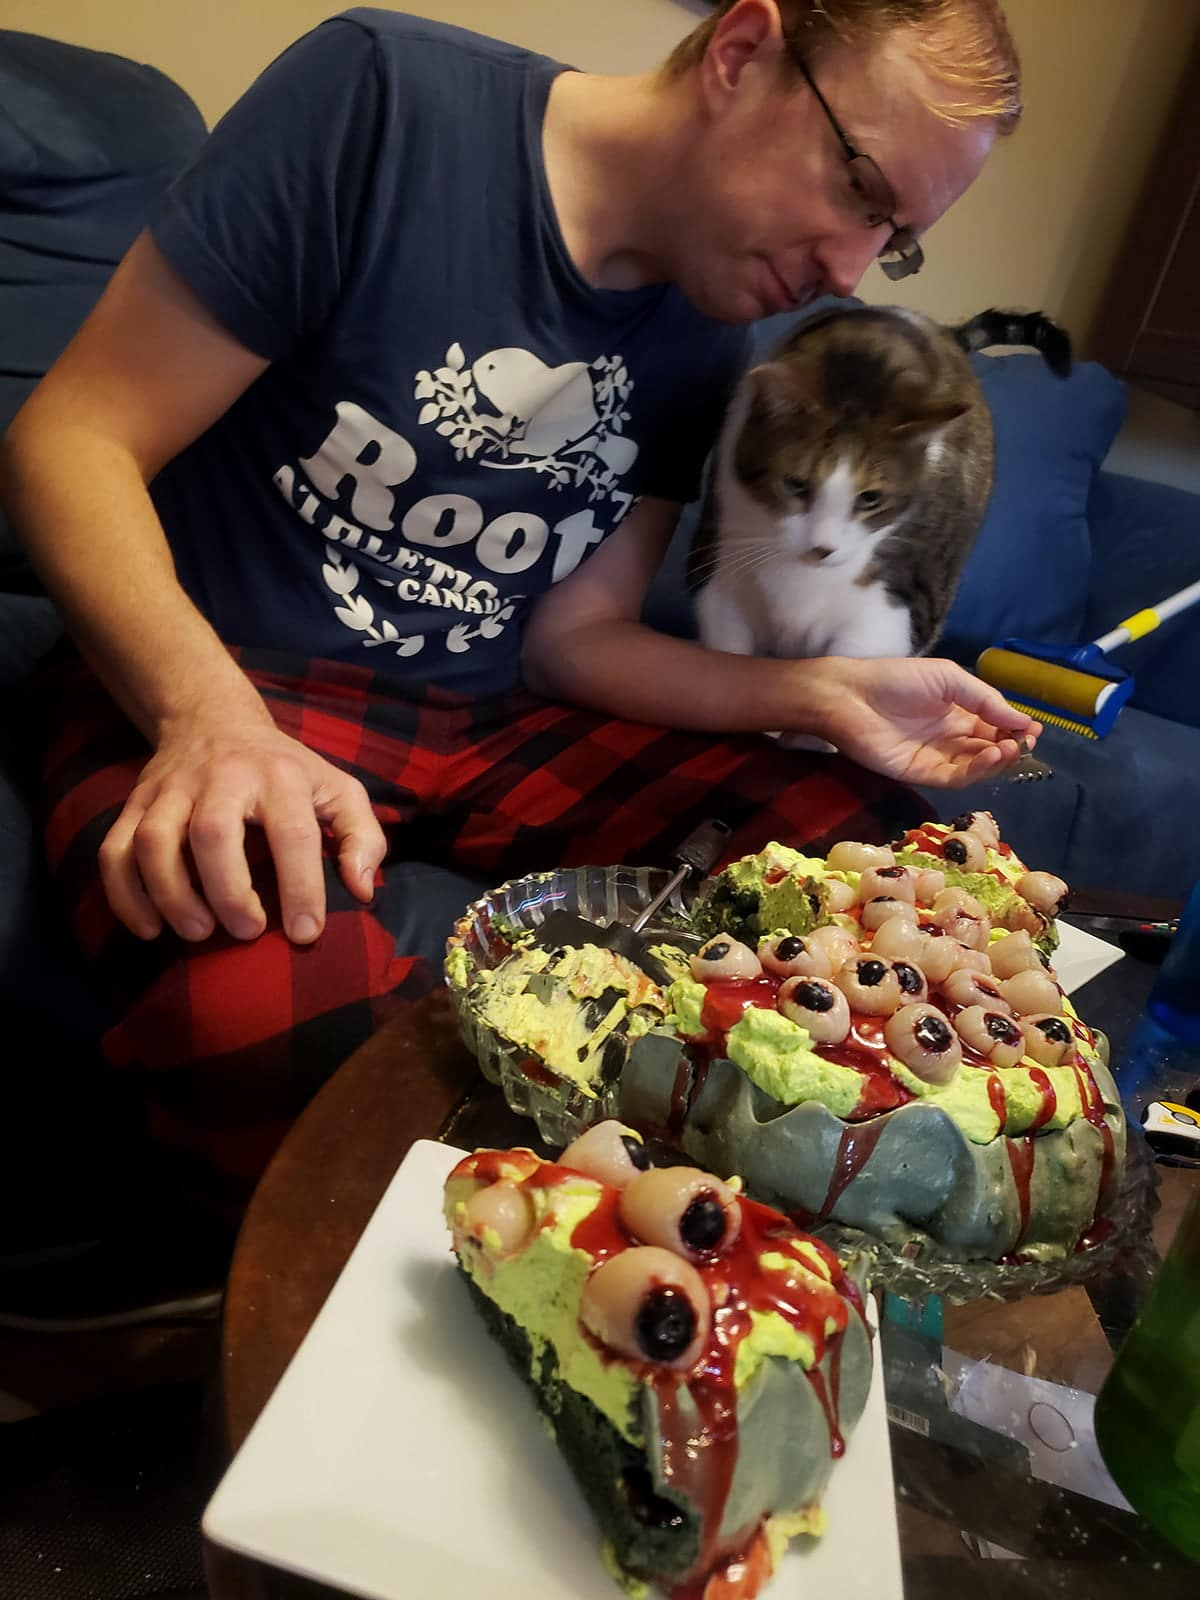 A grown man in a Roots shirt and plaid PJ bottoms valiantly defends his slice of pavlova from a 32 lb cat.